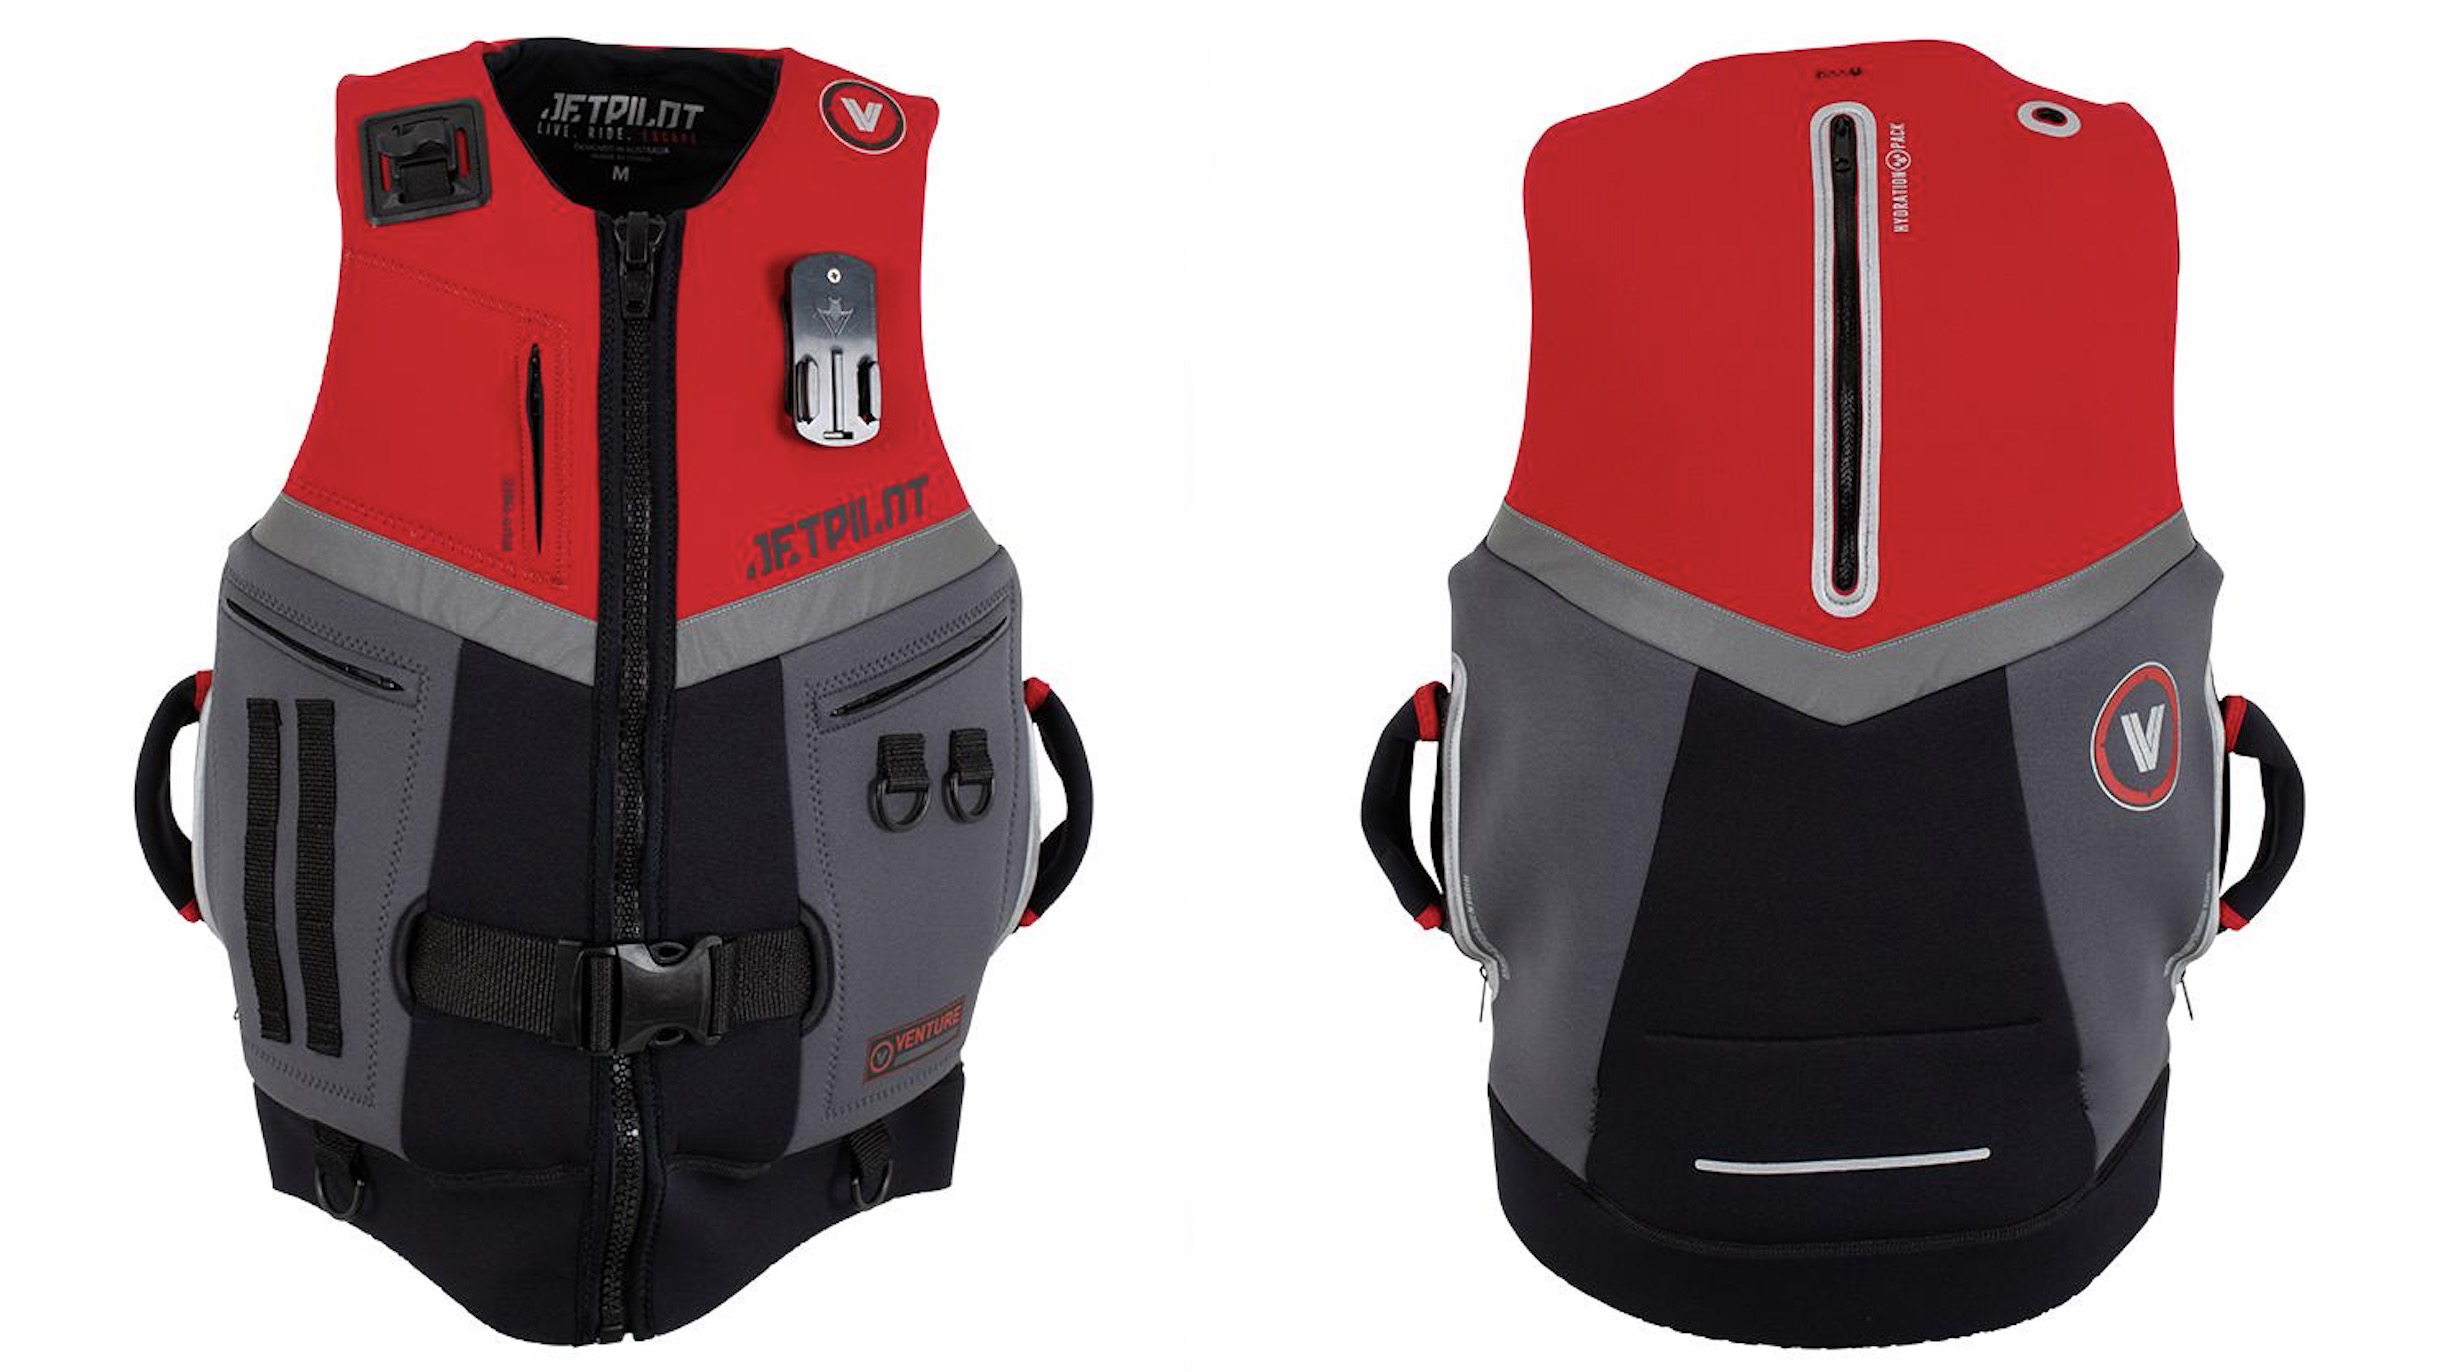 New for 2021: Jet Ski and personal watercraft vest with built-in hydration pack